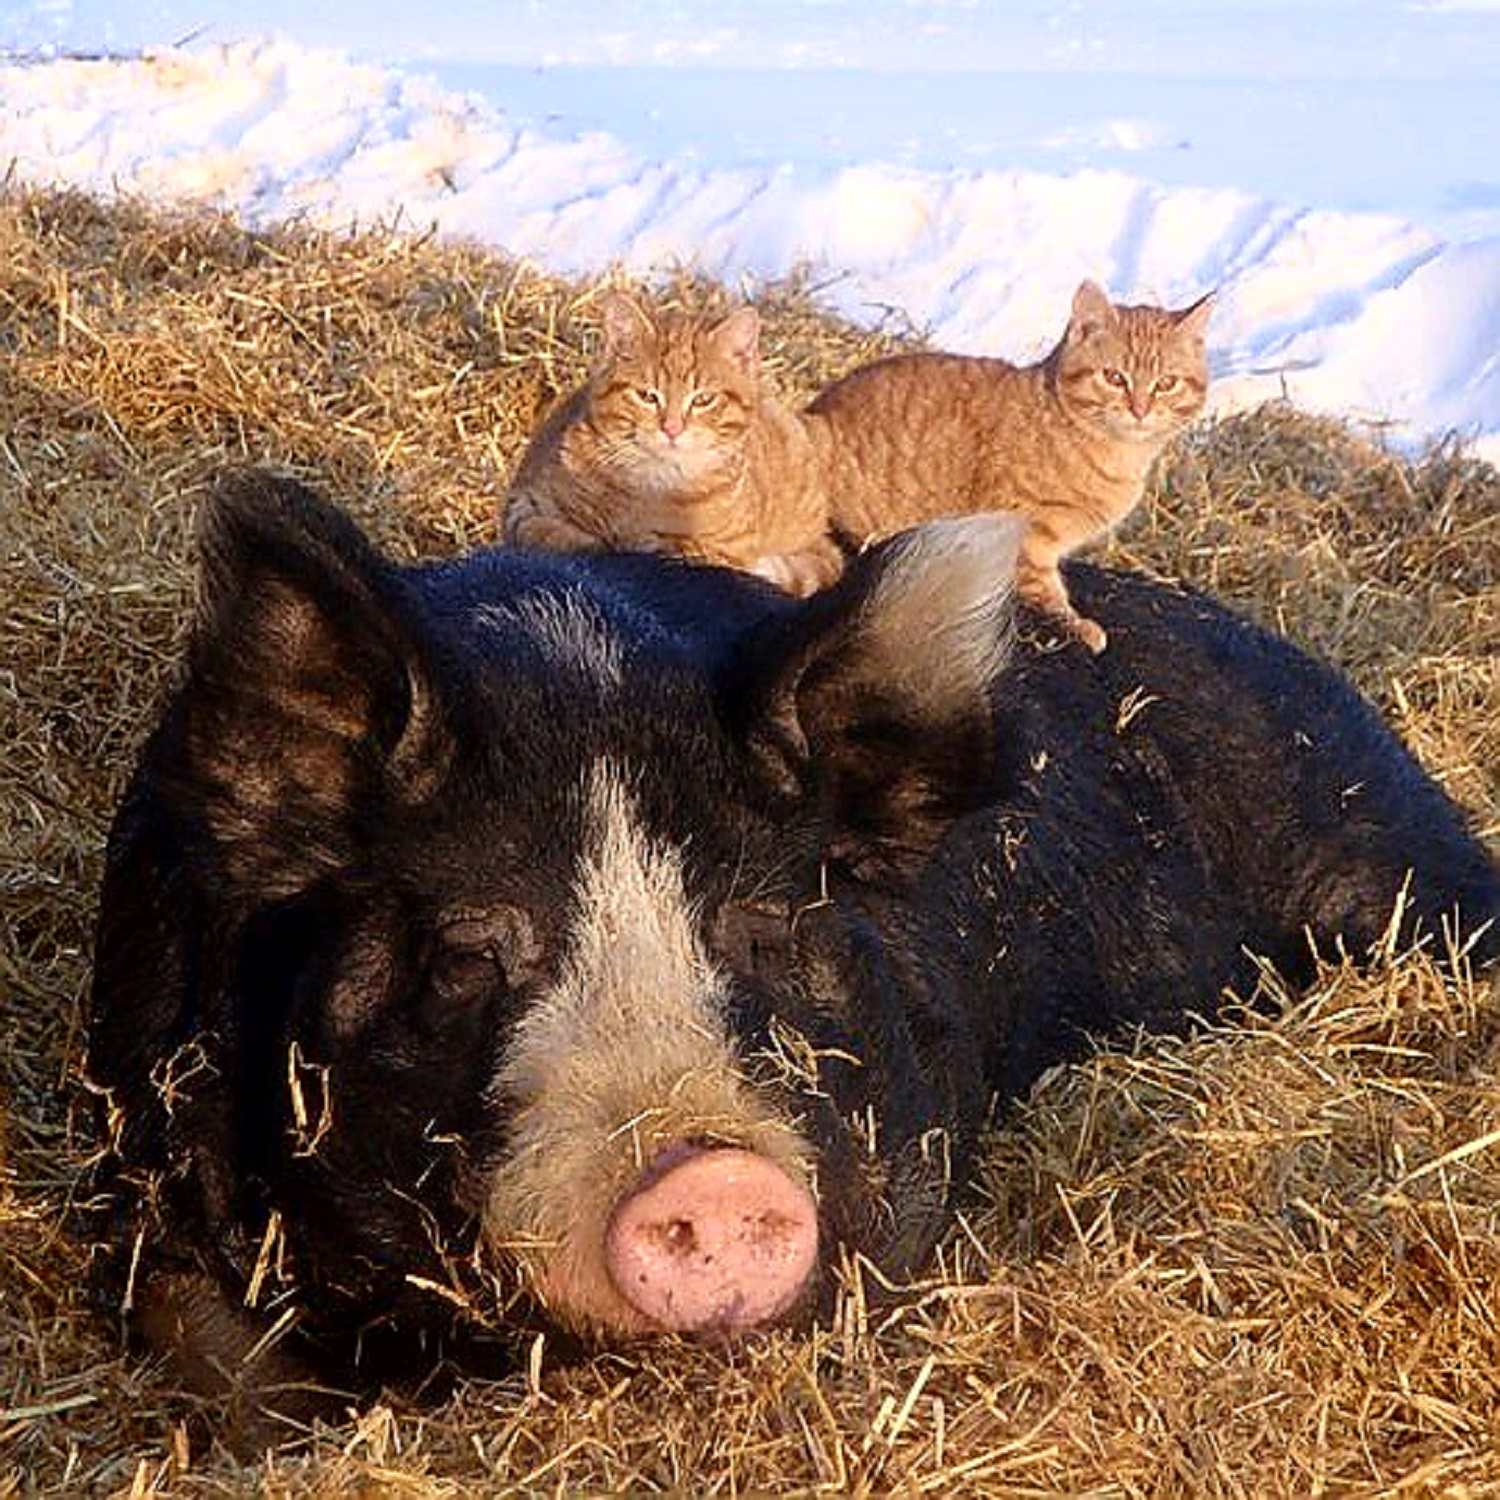 web page pic for pig and cats.jpg